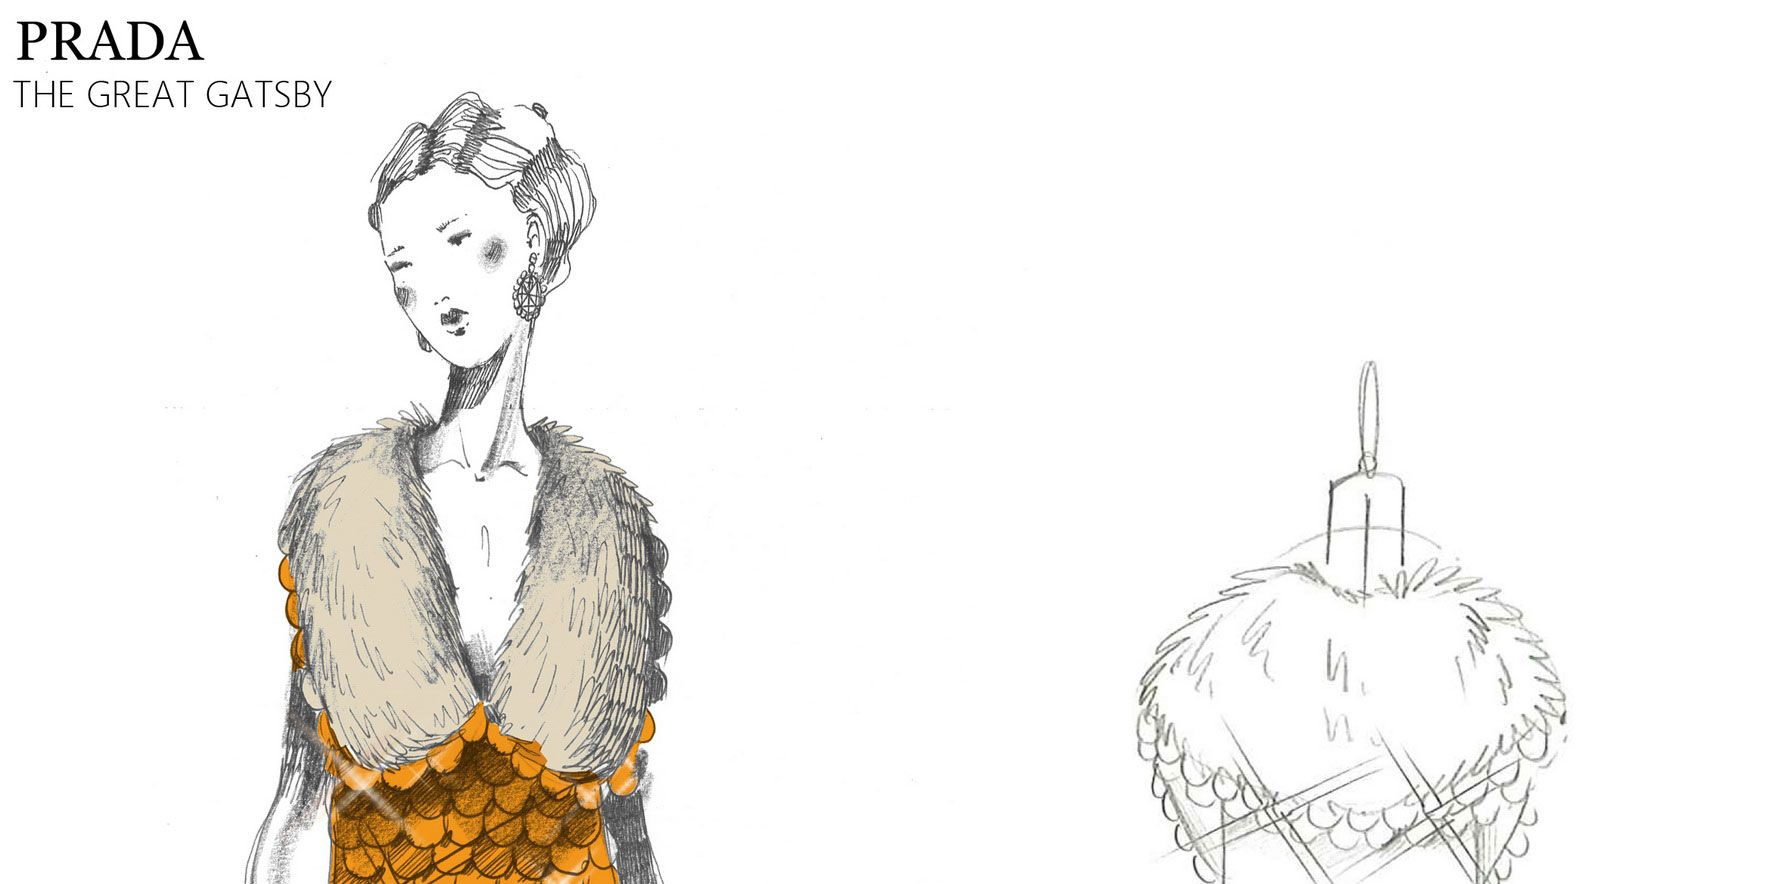 Miuccia Prada's Stunning Sketches for The Great Gatsby